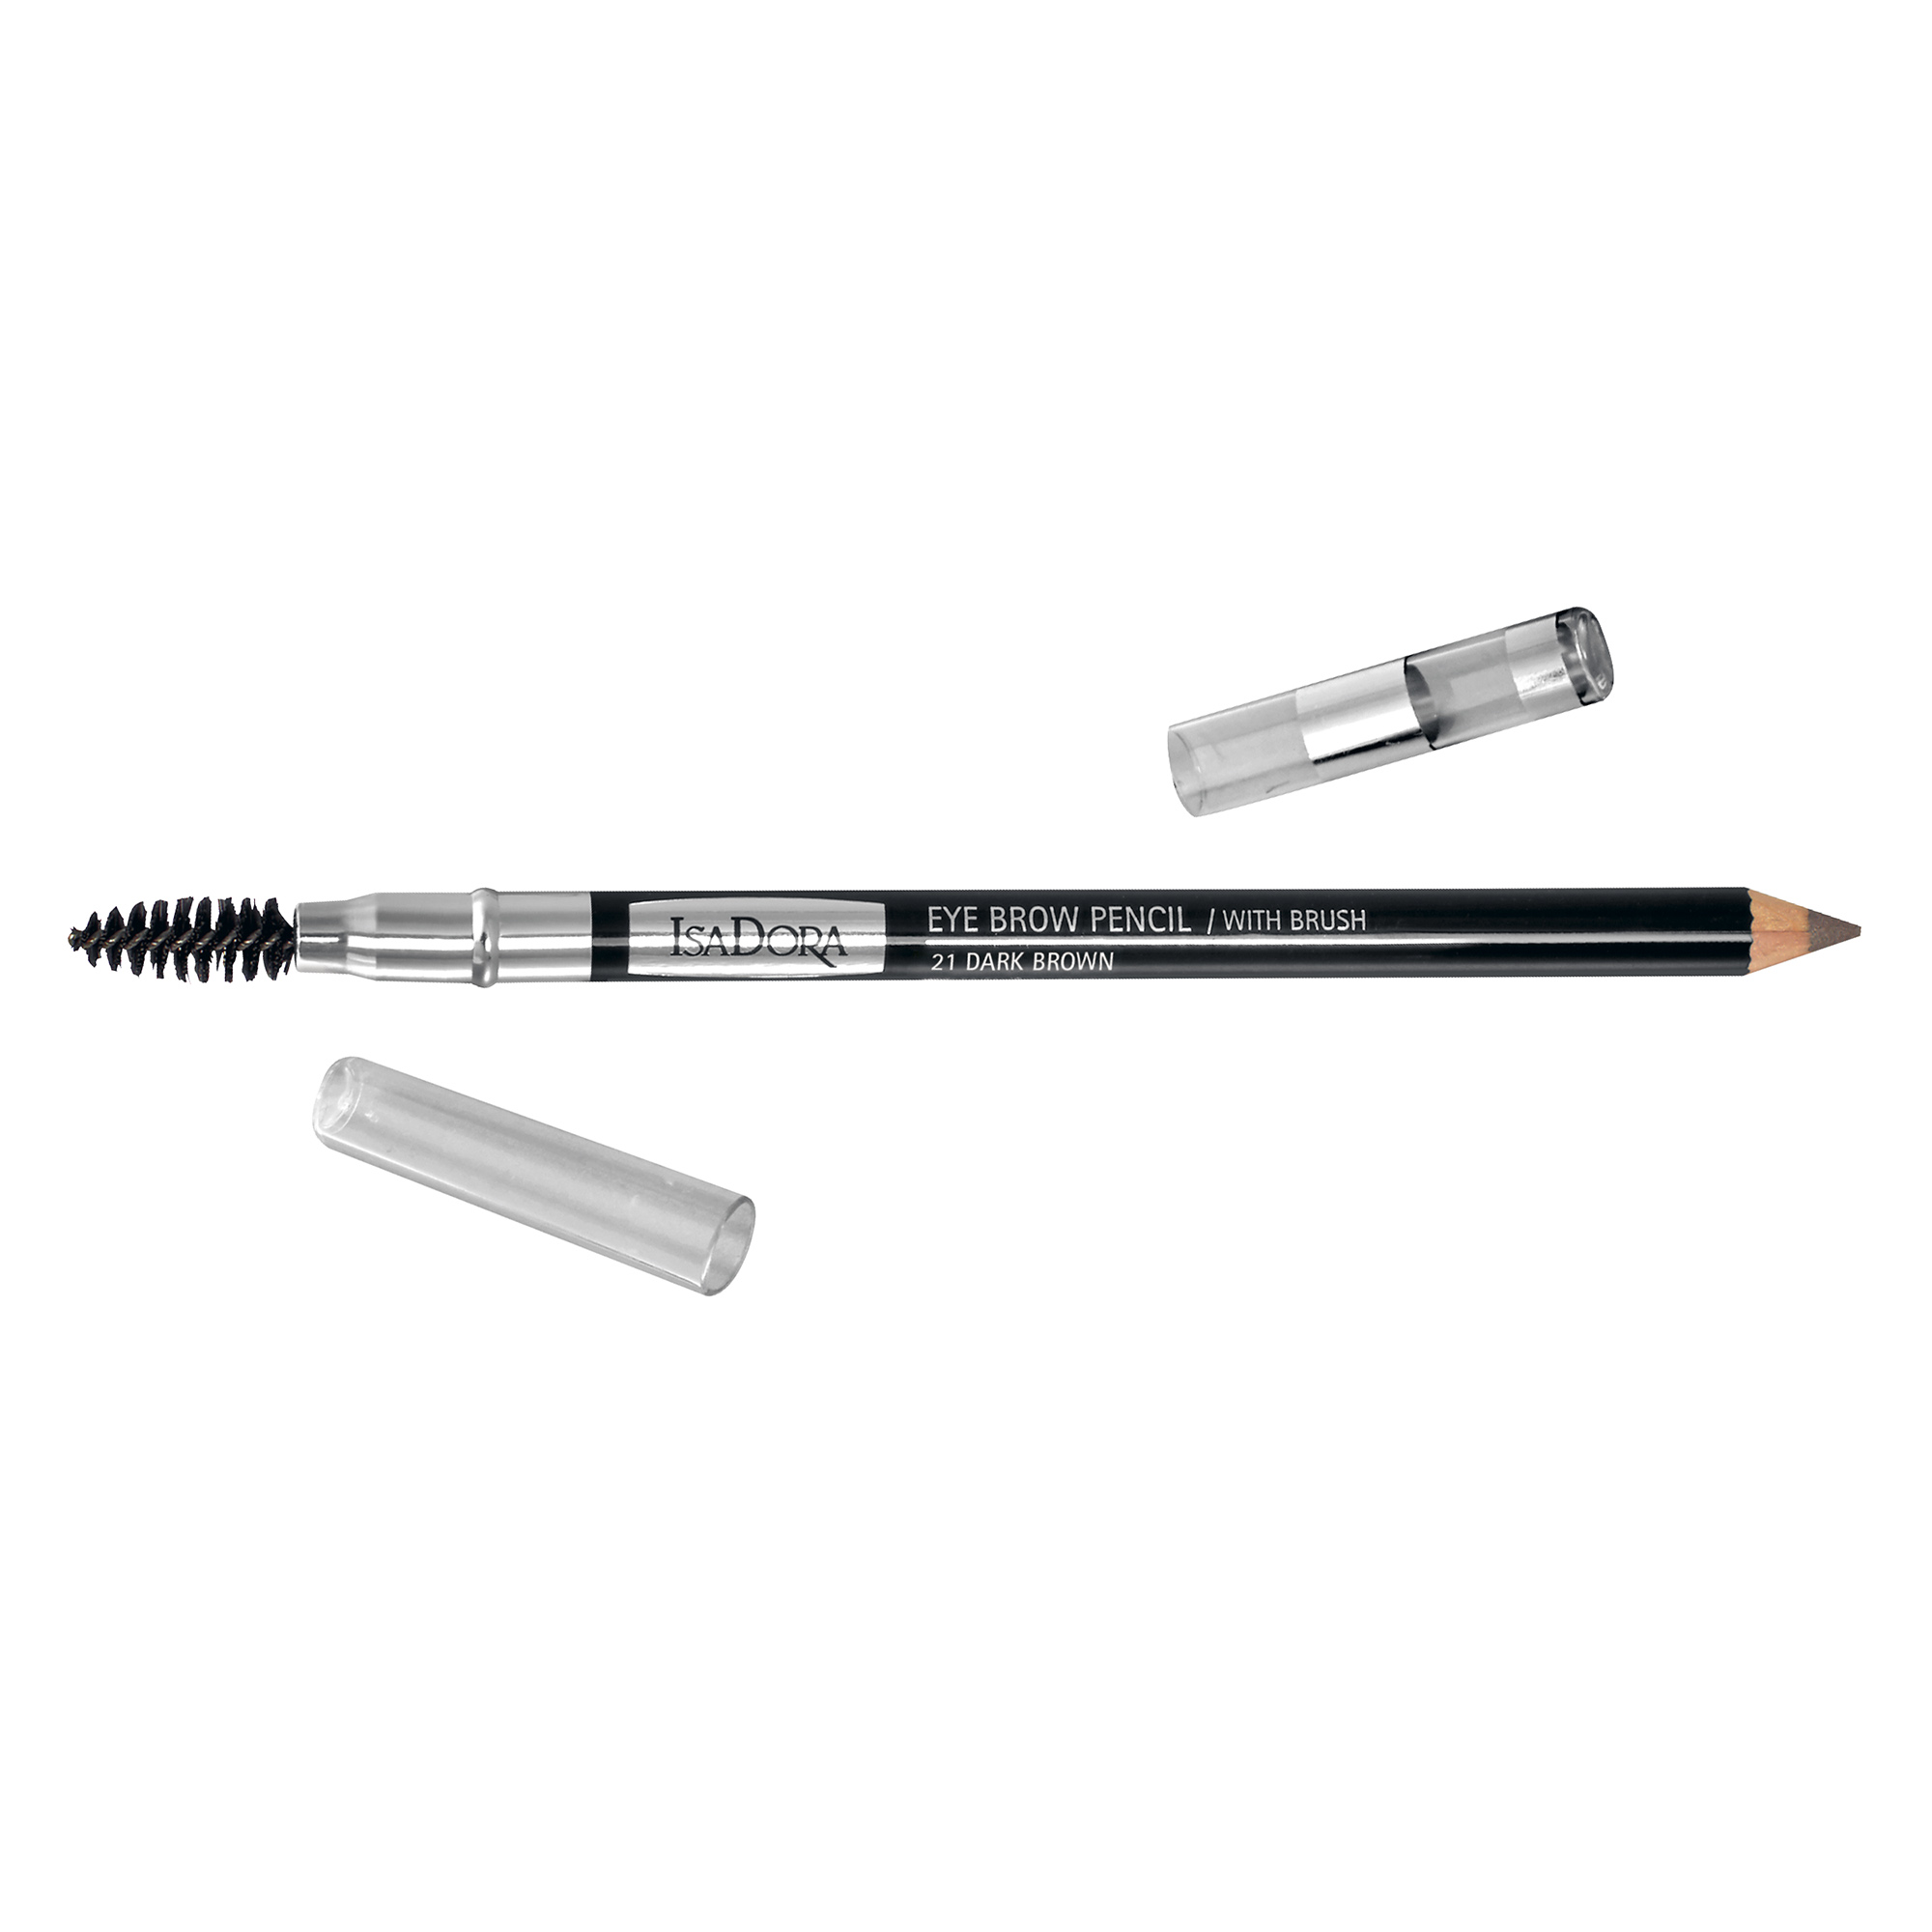 Eye Brow Pencil with Brush 21 Dark Brown